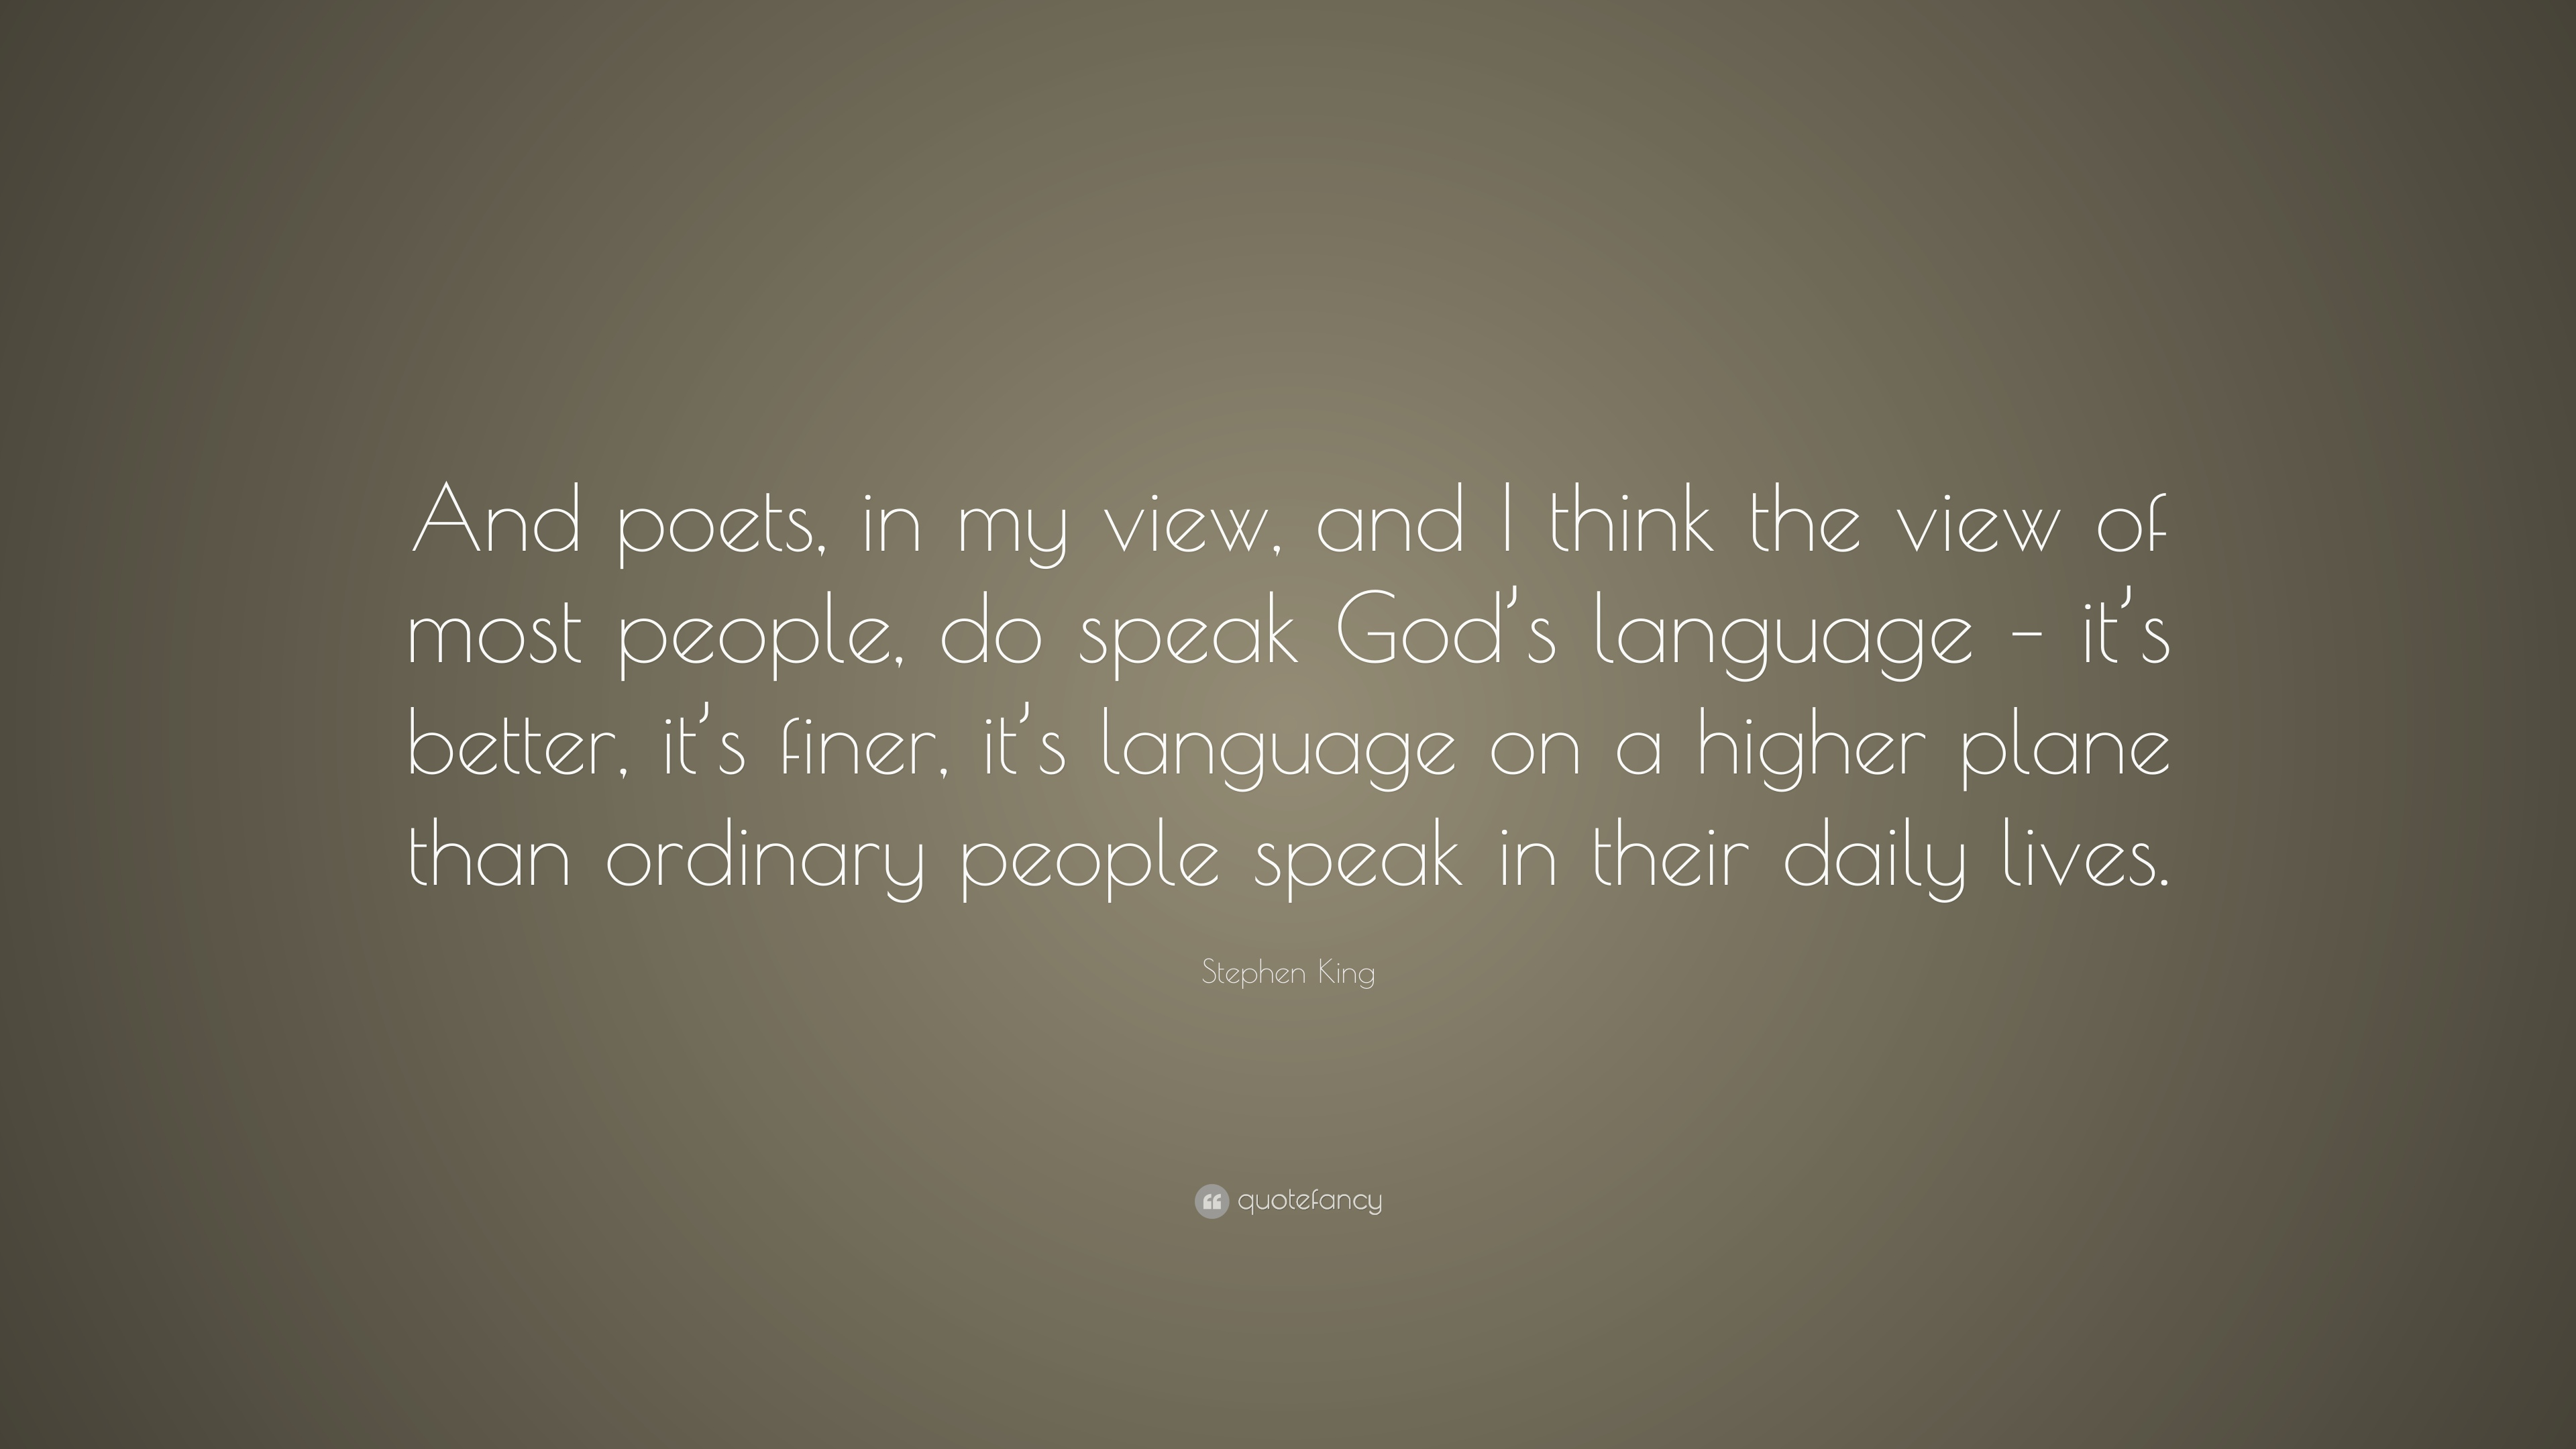 Stephen king quote and poets in my view and i think the view of